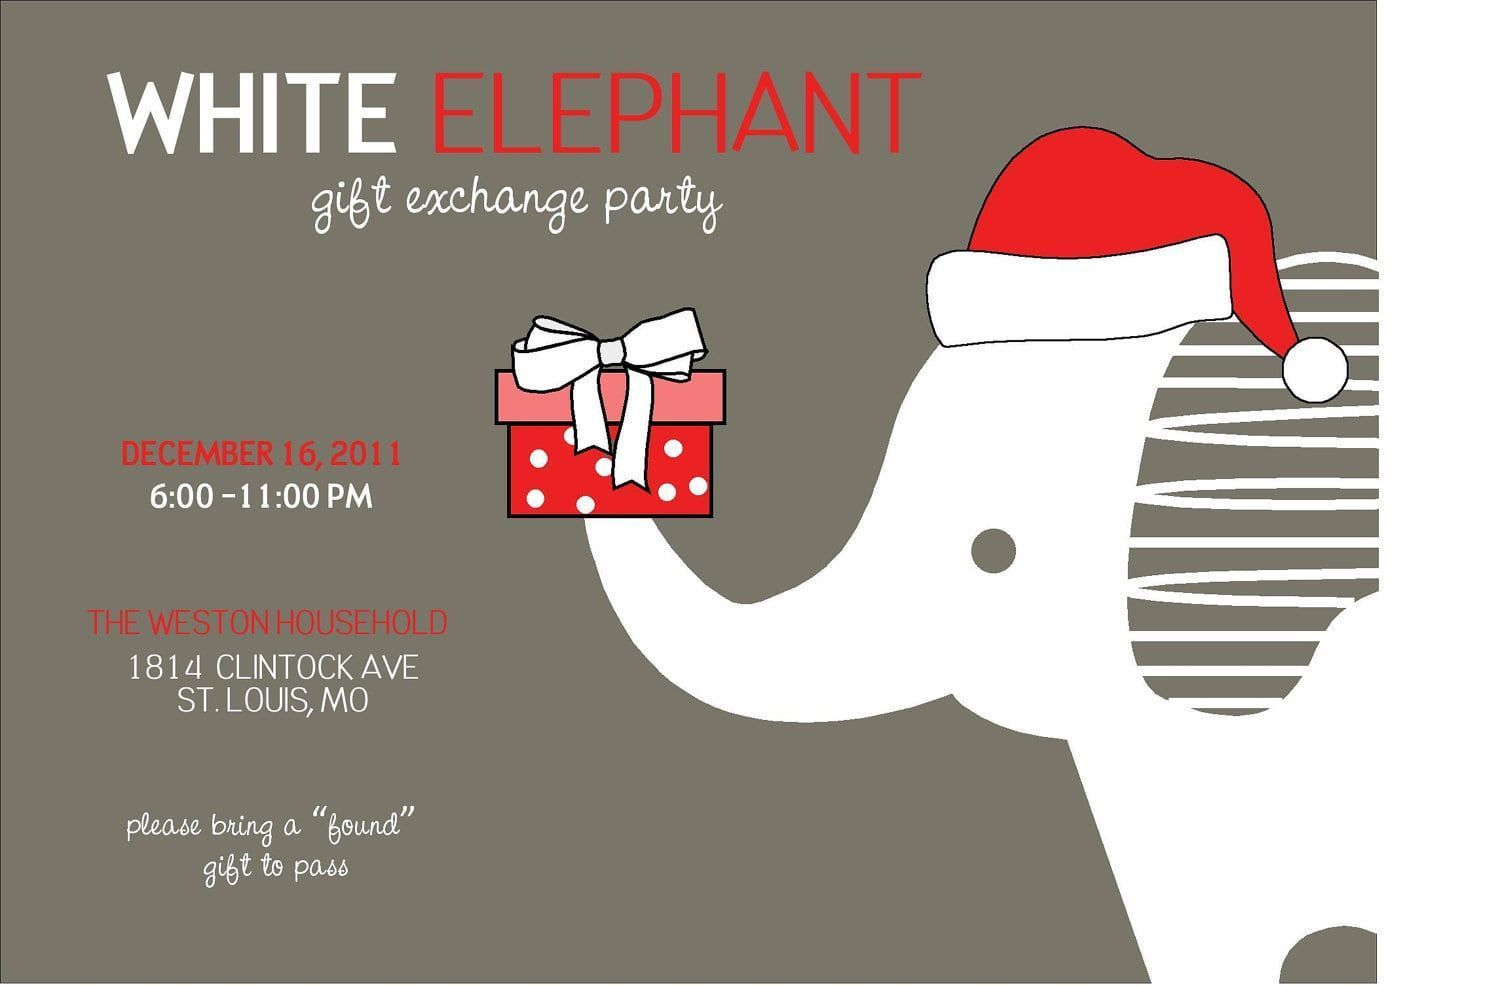 White Elephant Christmas Party Invitations #schrottwichtelnideen White Elephant Christmas Party Invitations #schrottwichtelnideen White Elephant Christmas Party Invitations #schrottwichtelnideen White Elephant Christmas Party Invitations #schrottwichtelnideen